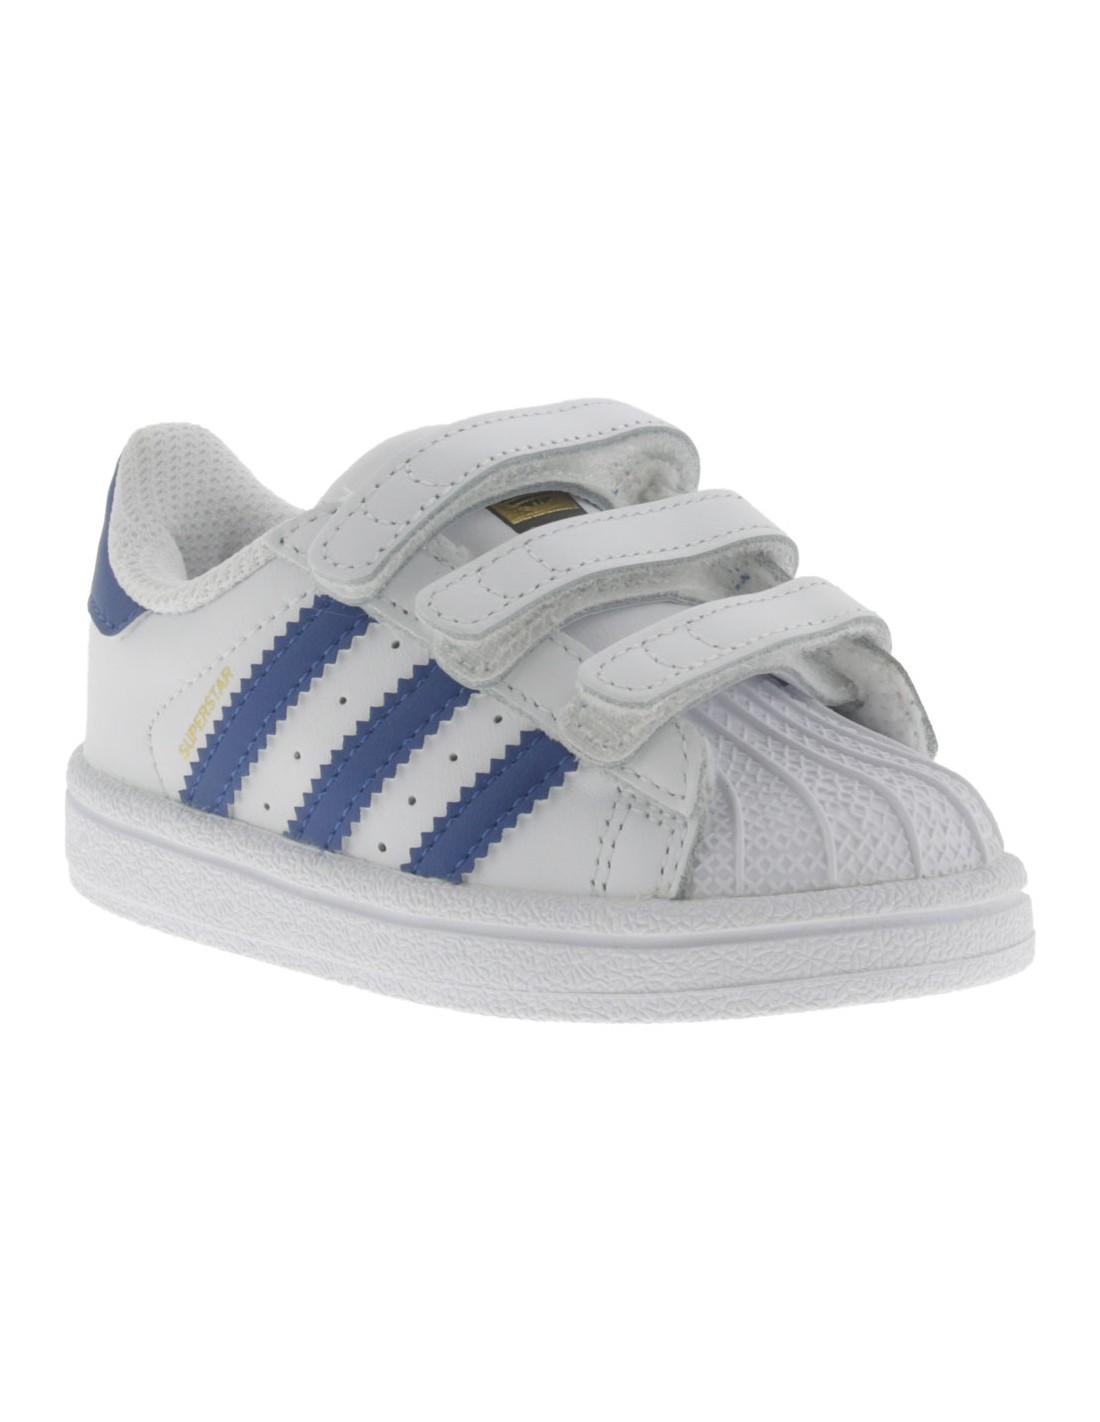 978a9dba2193e Acquista 2 OFF QUALSIASI adidas superstar bianche e blu CASE E ...